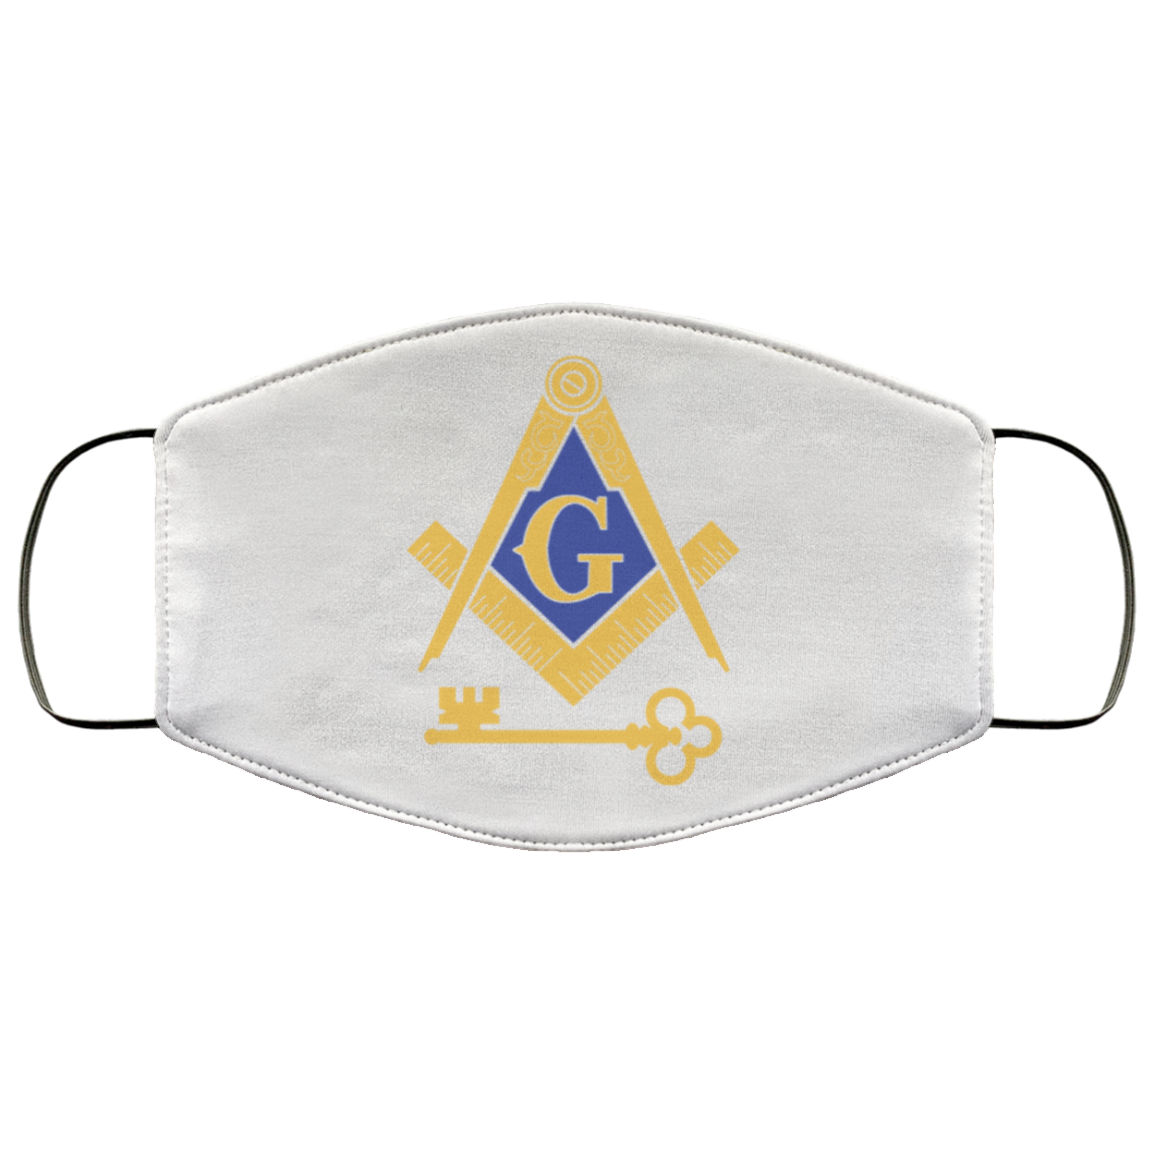 International Mason Face Mask redirect 442